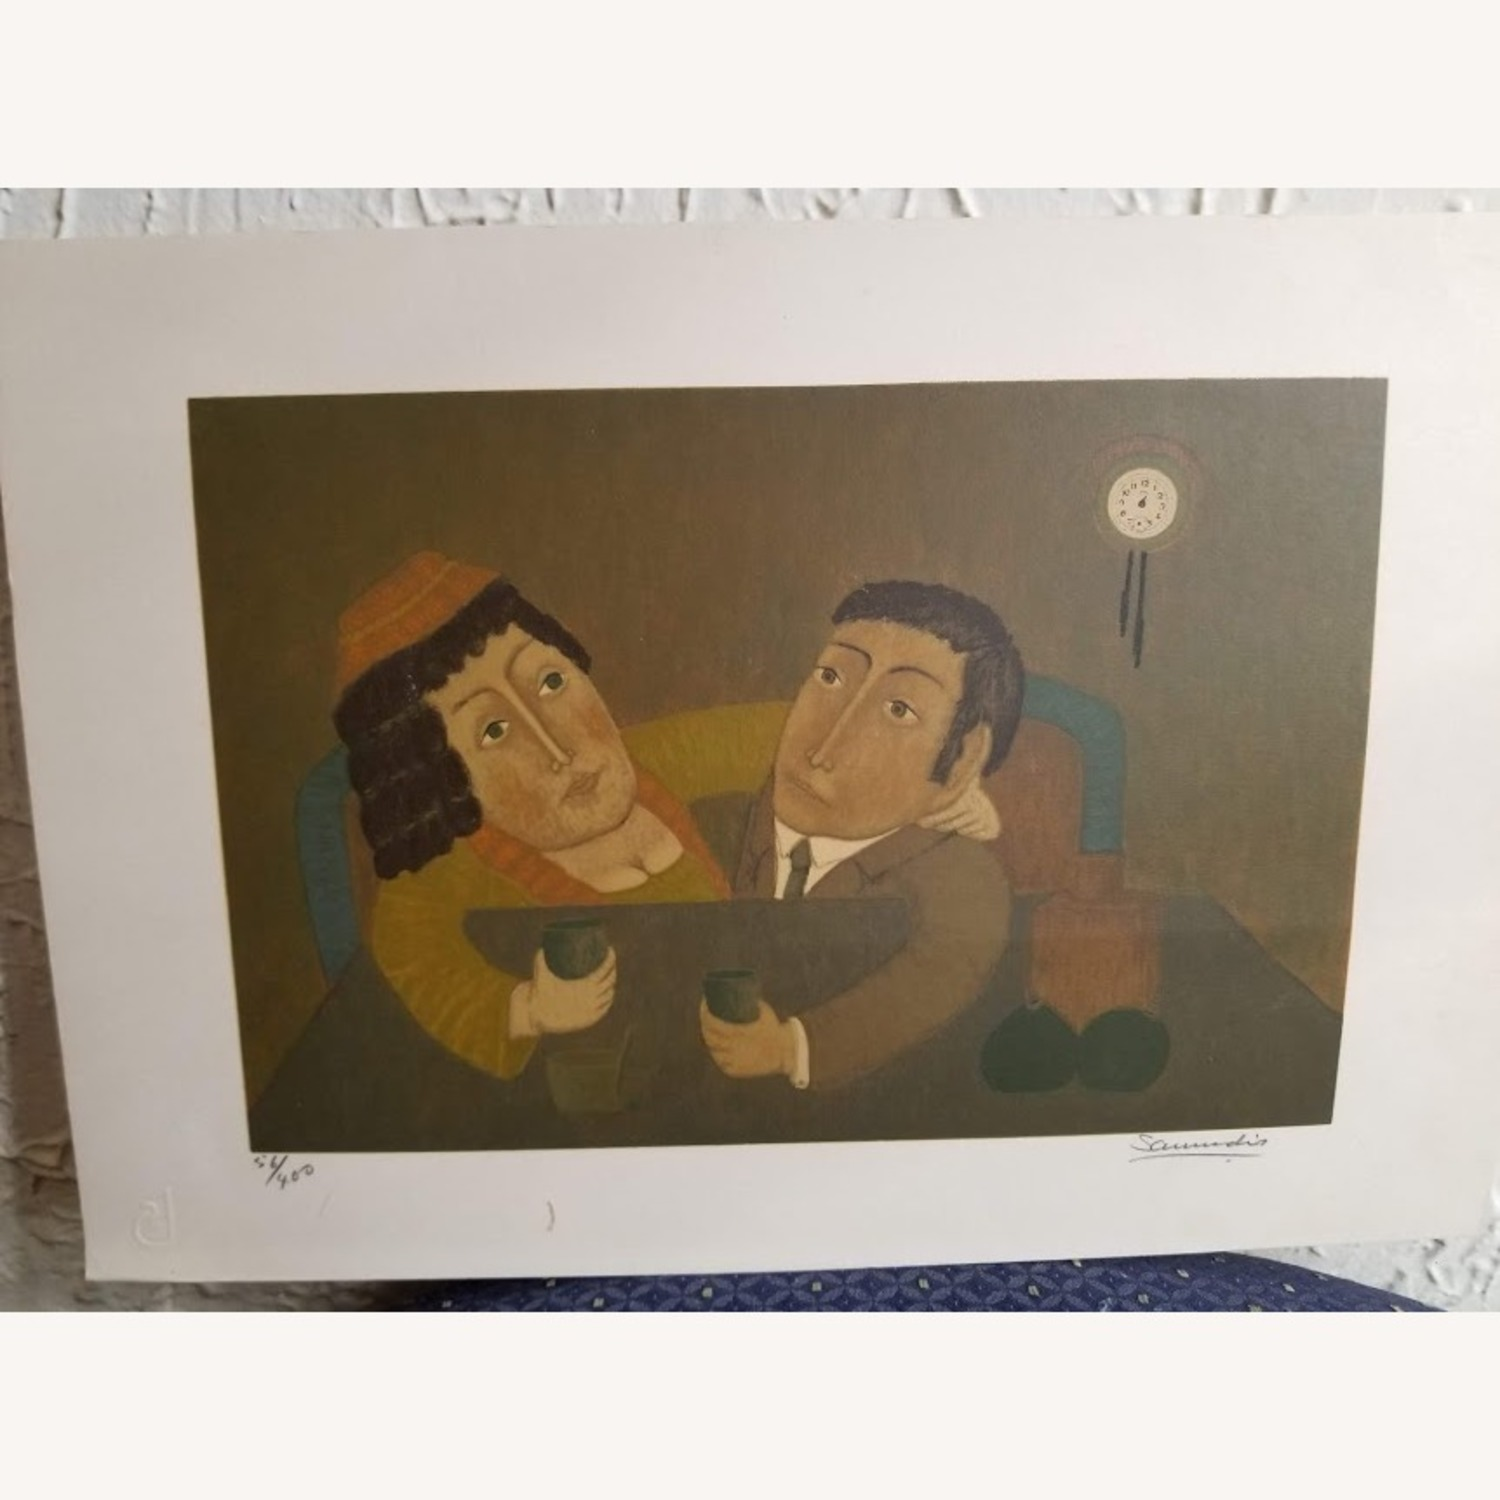 Signed Numbered Colombian Art Print by Antonio Samudio - image-3